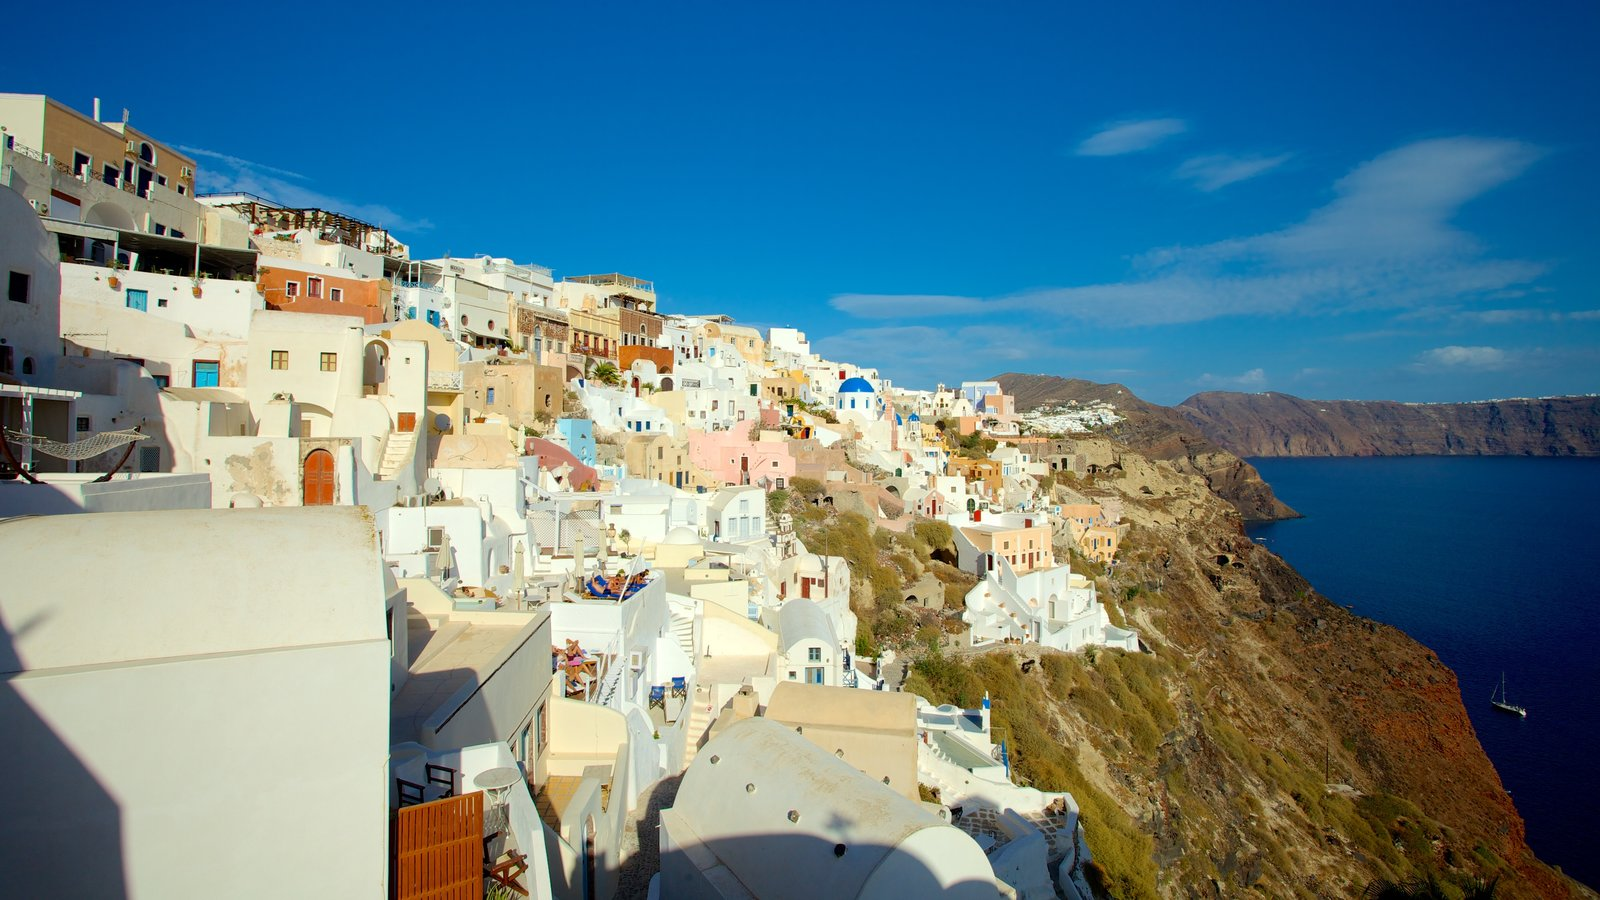 Oia showing general coastal views and a coastal town